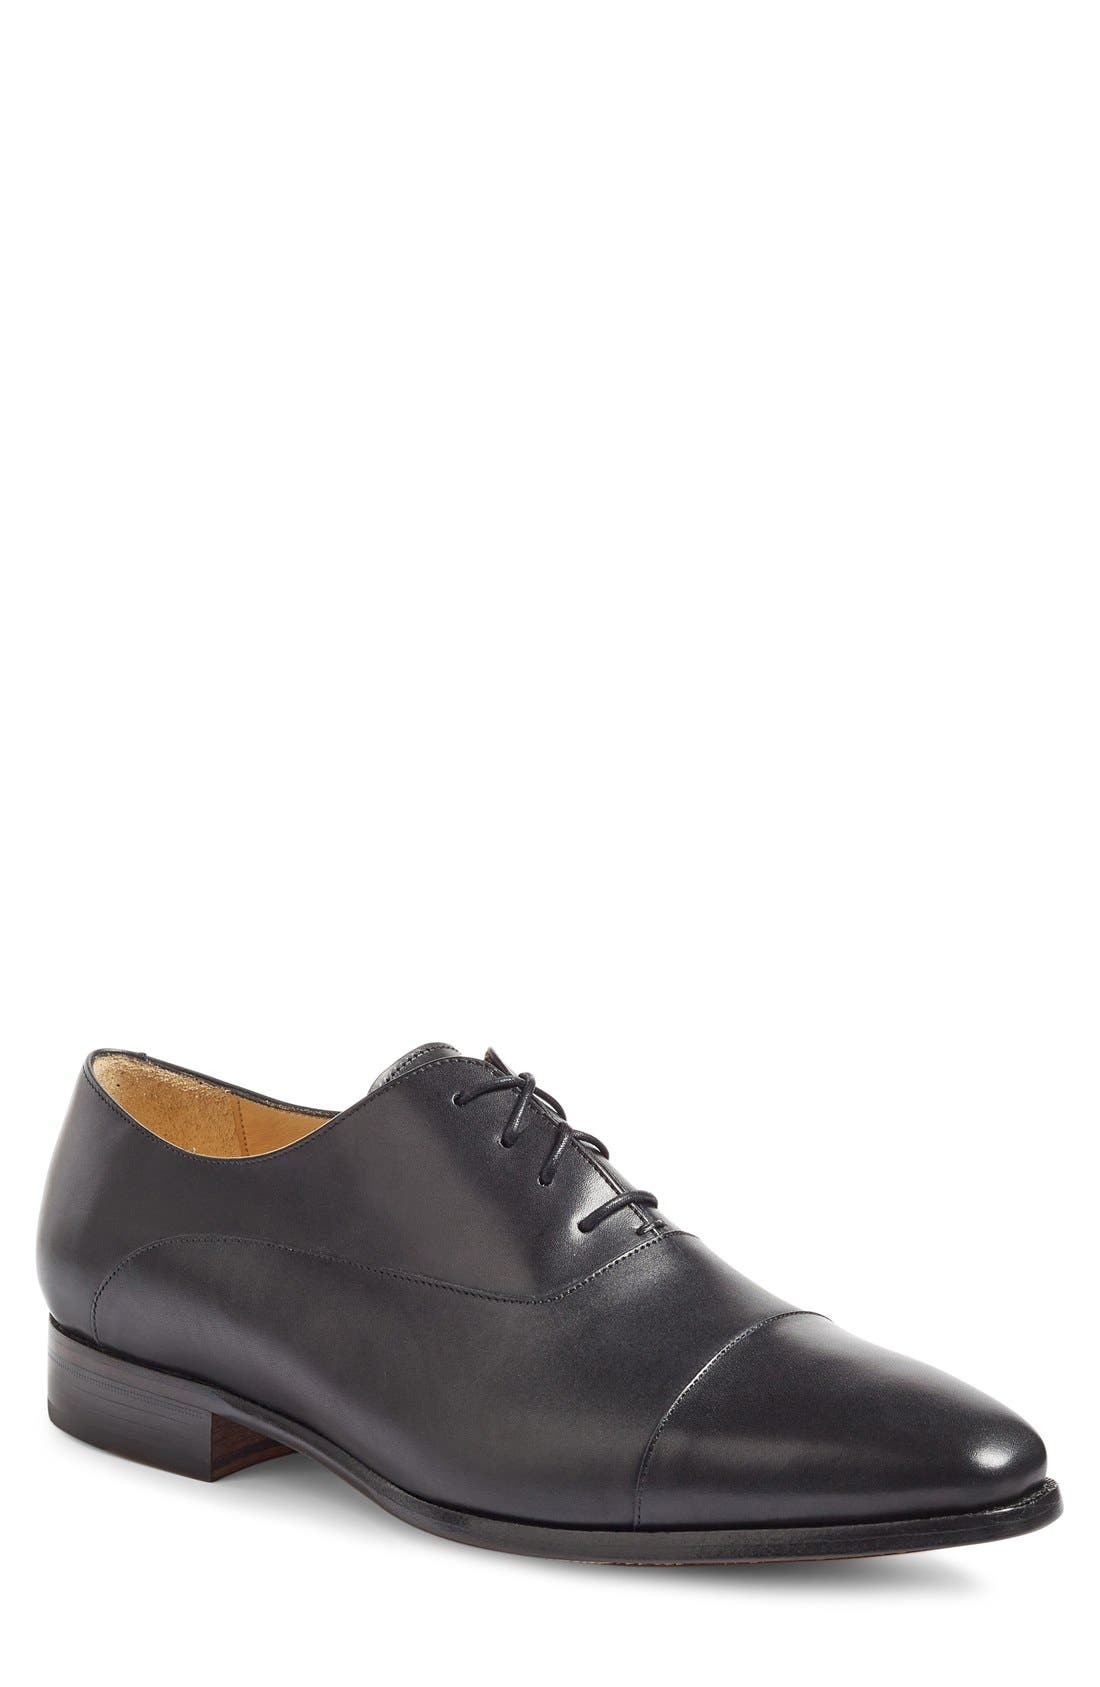 Joe Cap Toe Oxford,                         Main,                         color, BLACK LEATHER